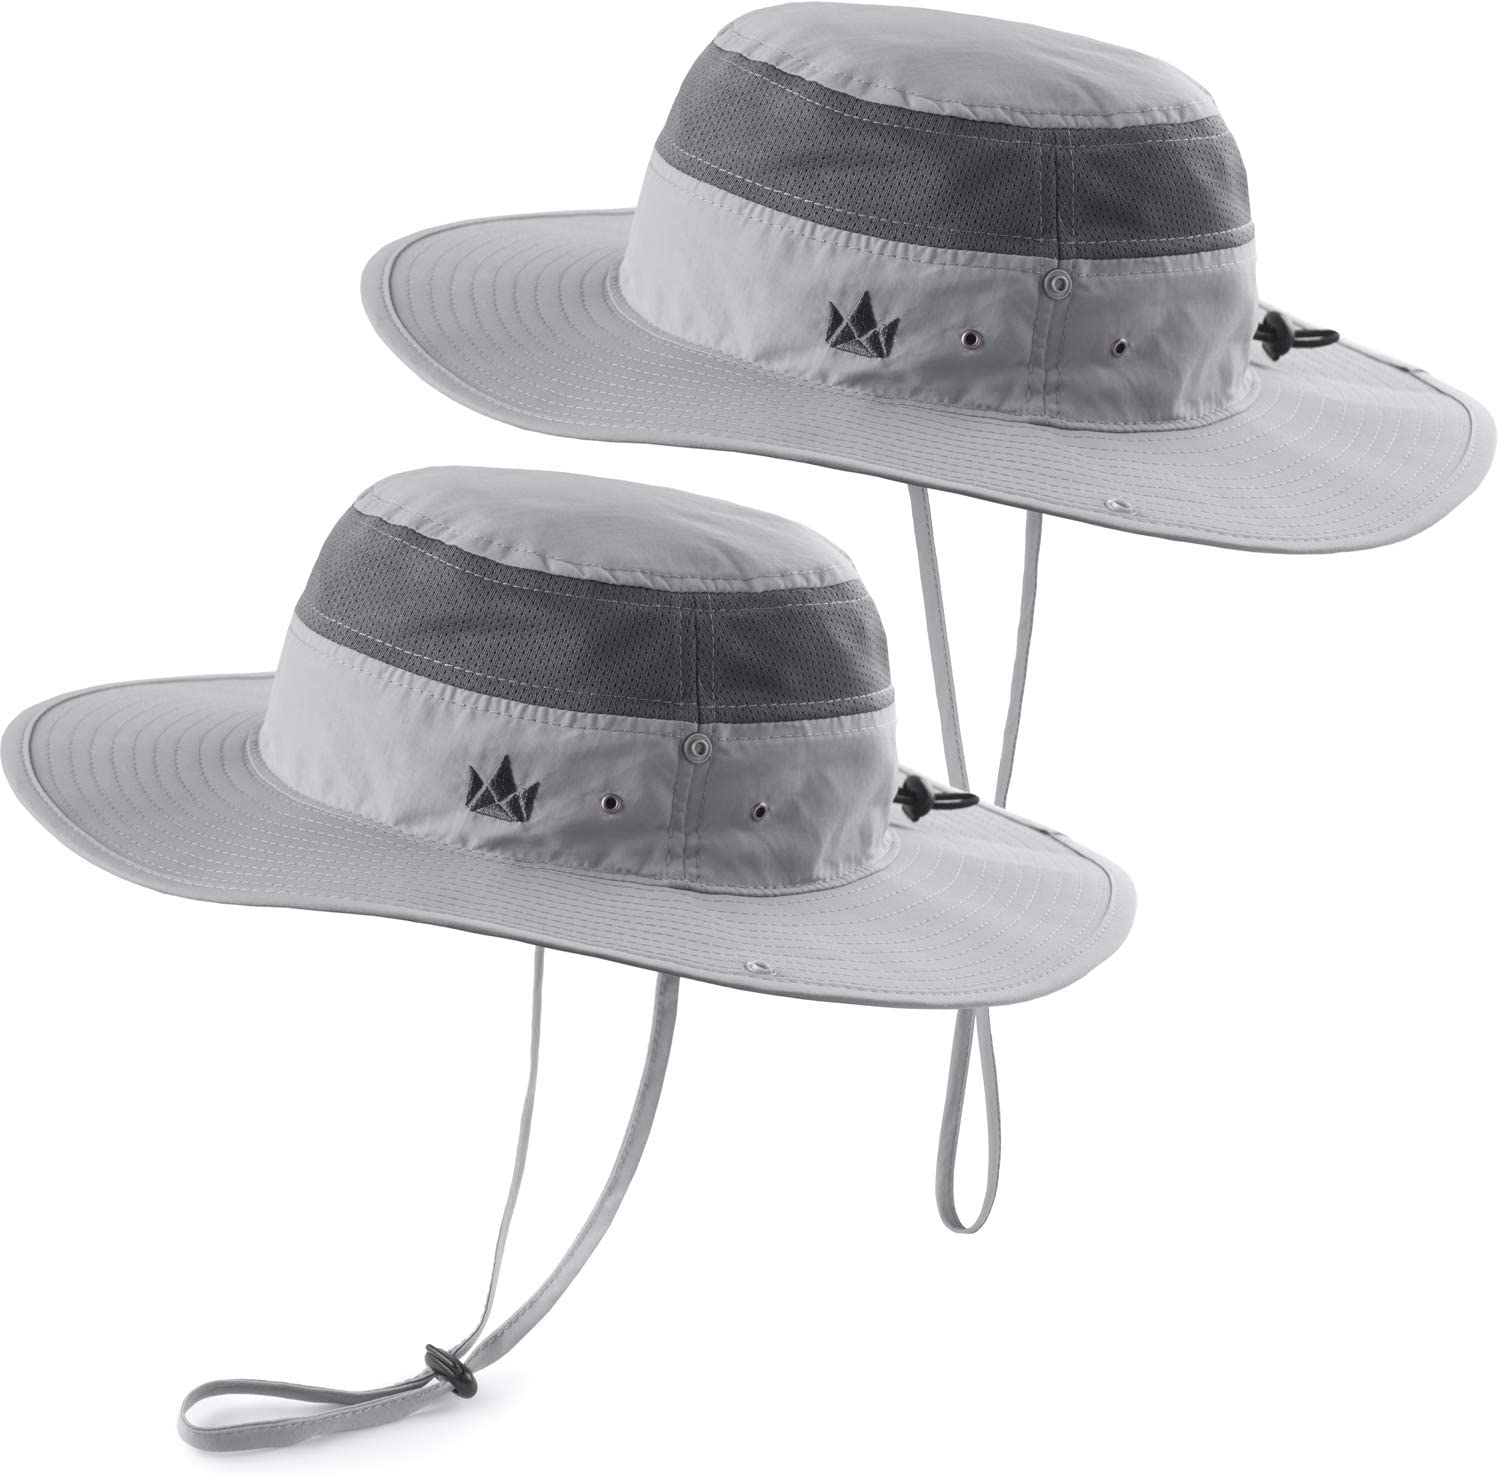 The Friendly Swede Sombrero de Pescador para Actividades al Aire Libre con Inserciones de Red y Logo Bordado Pack de 2